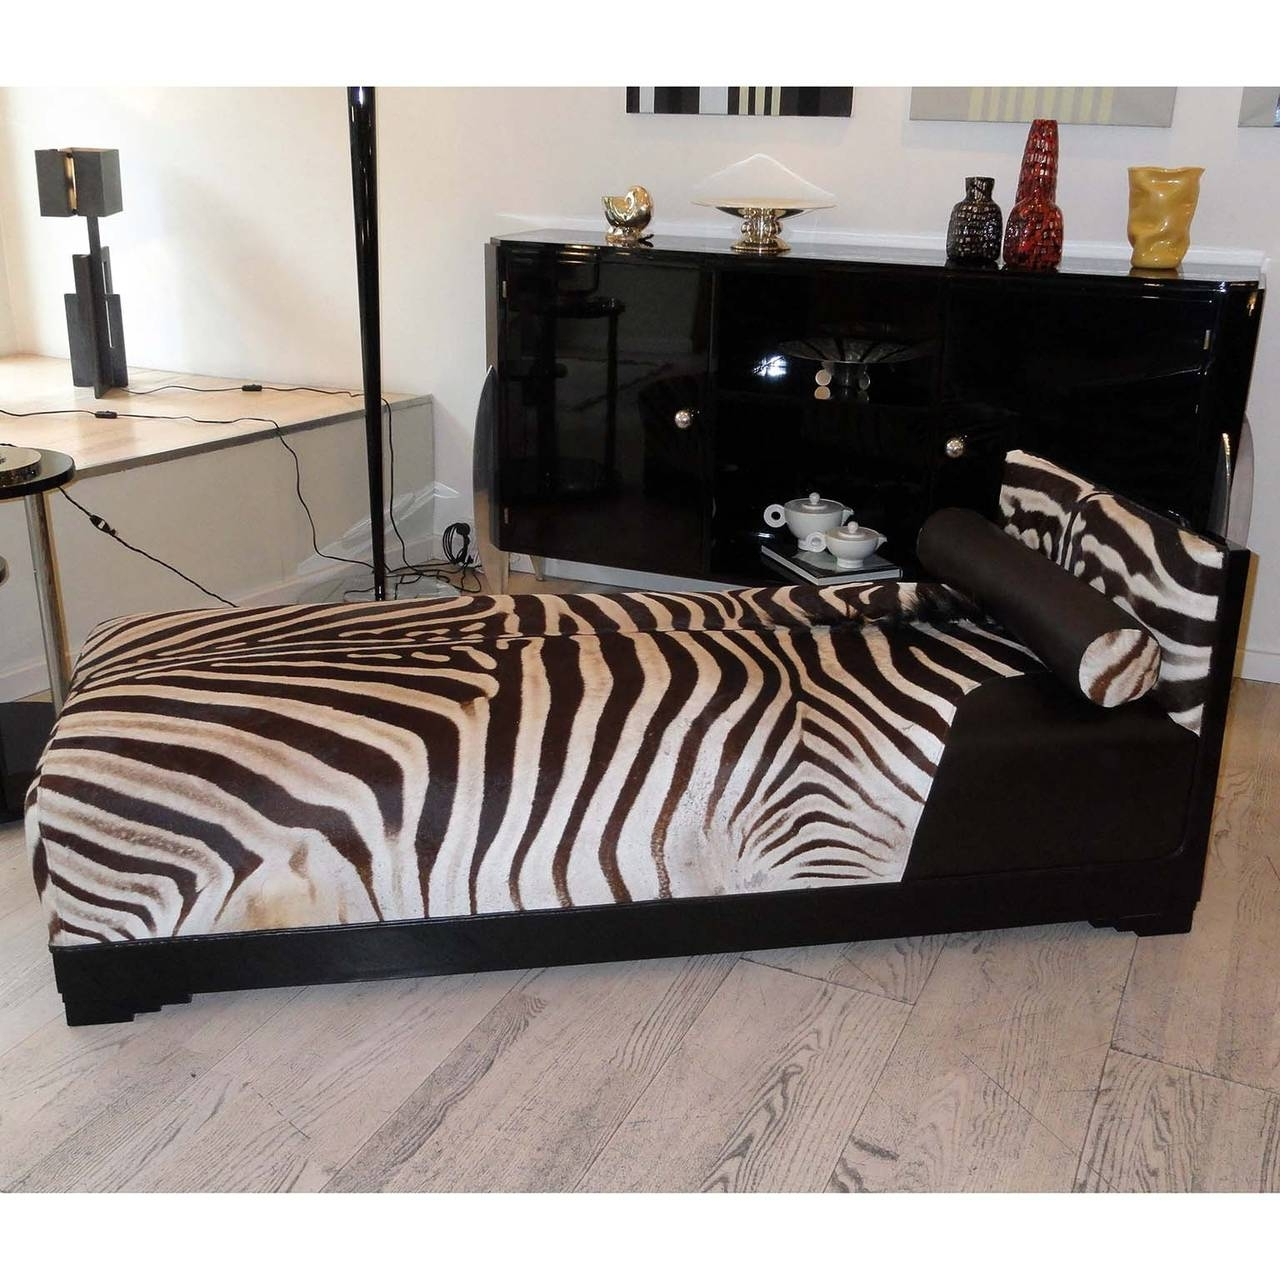 Exquisite Art Deco French Chaise Longue With Zebra Skin For Sale Intended For Newest Zebra Chaise Lounges (View 3 of 15)